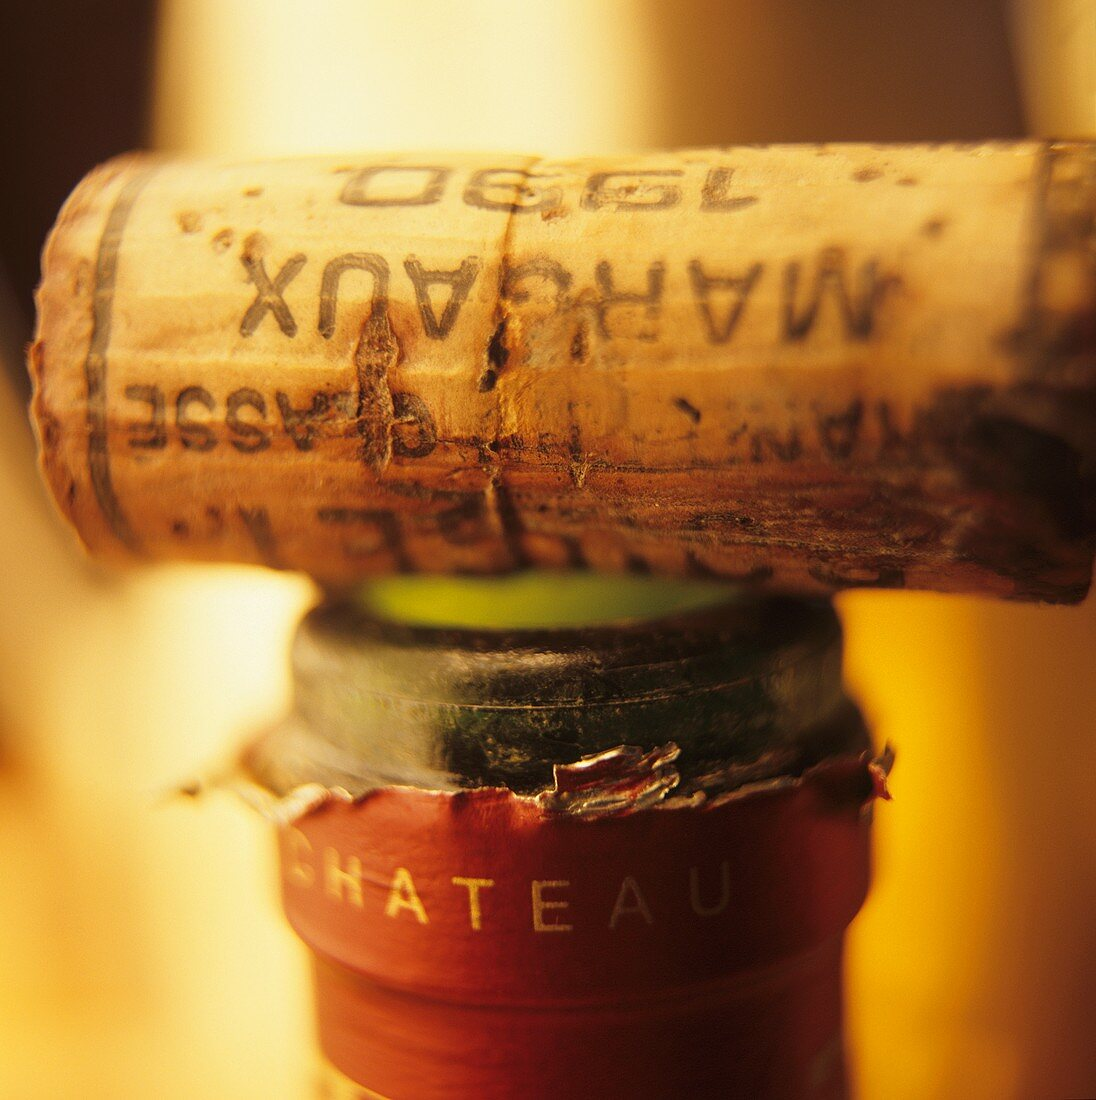 A bottle of 1990 Chateau Margaux with cork